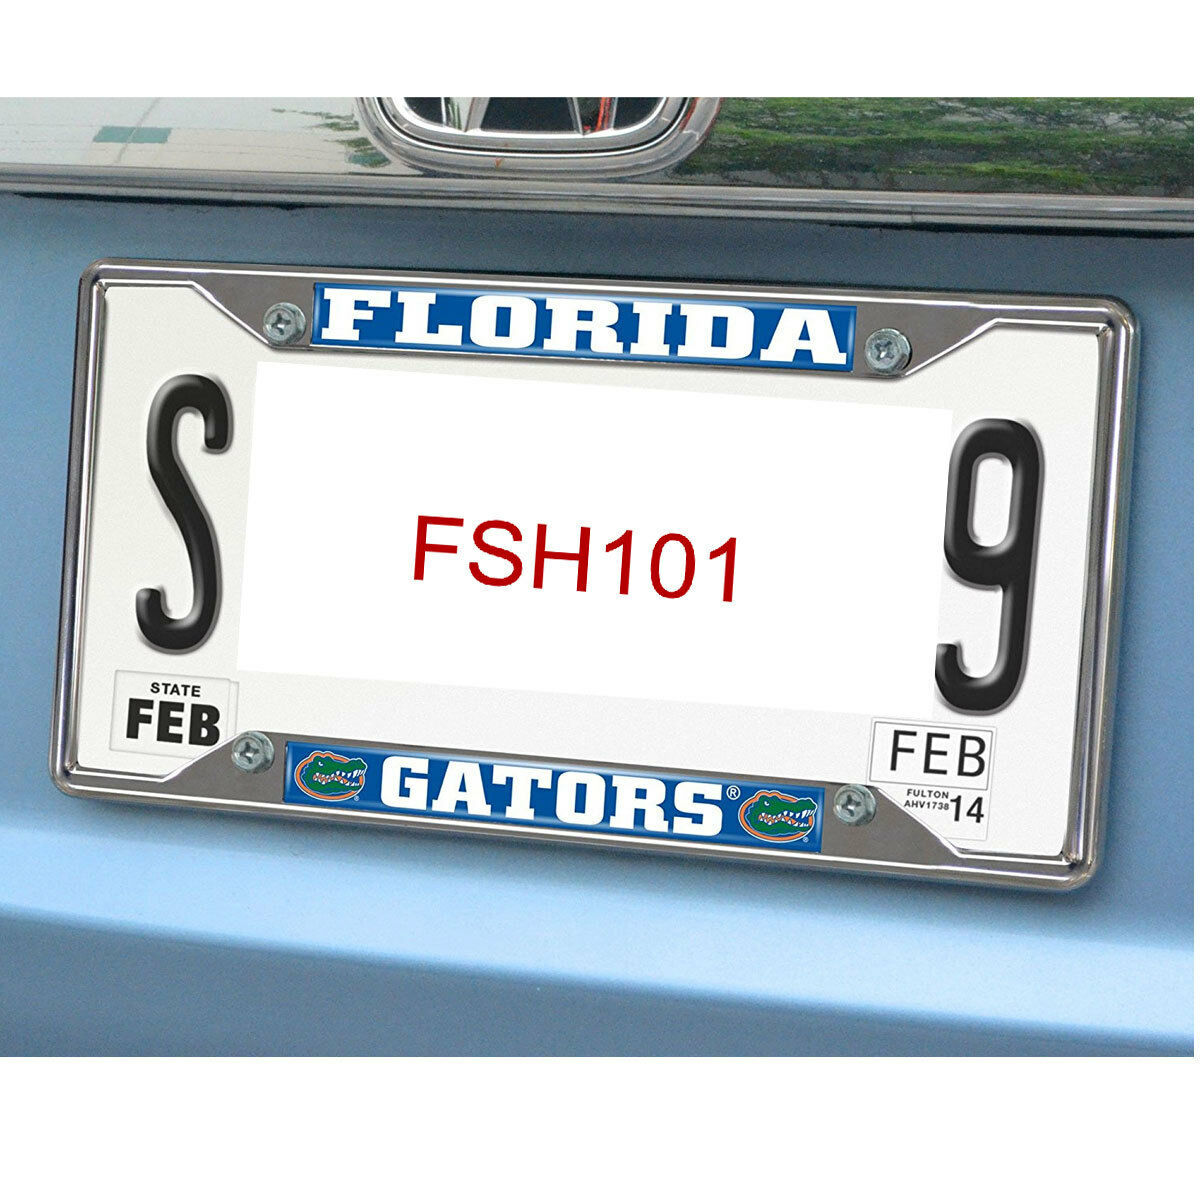 FANMATS University of Florida Gators Chrome License Plate Frame | eBay